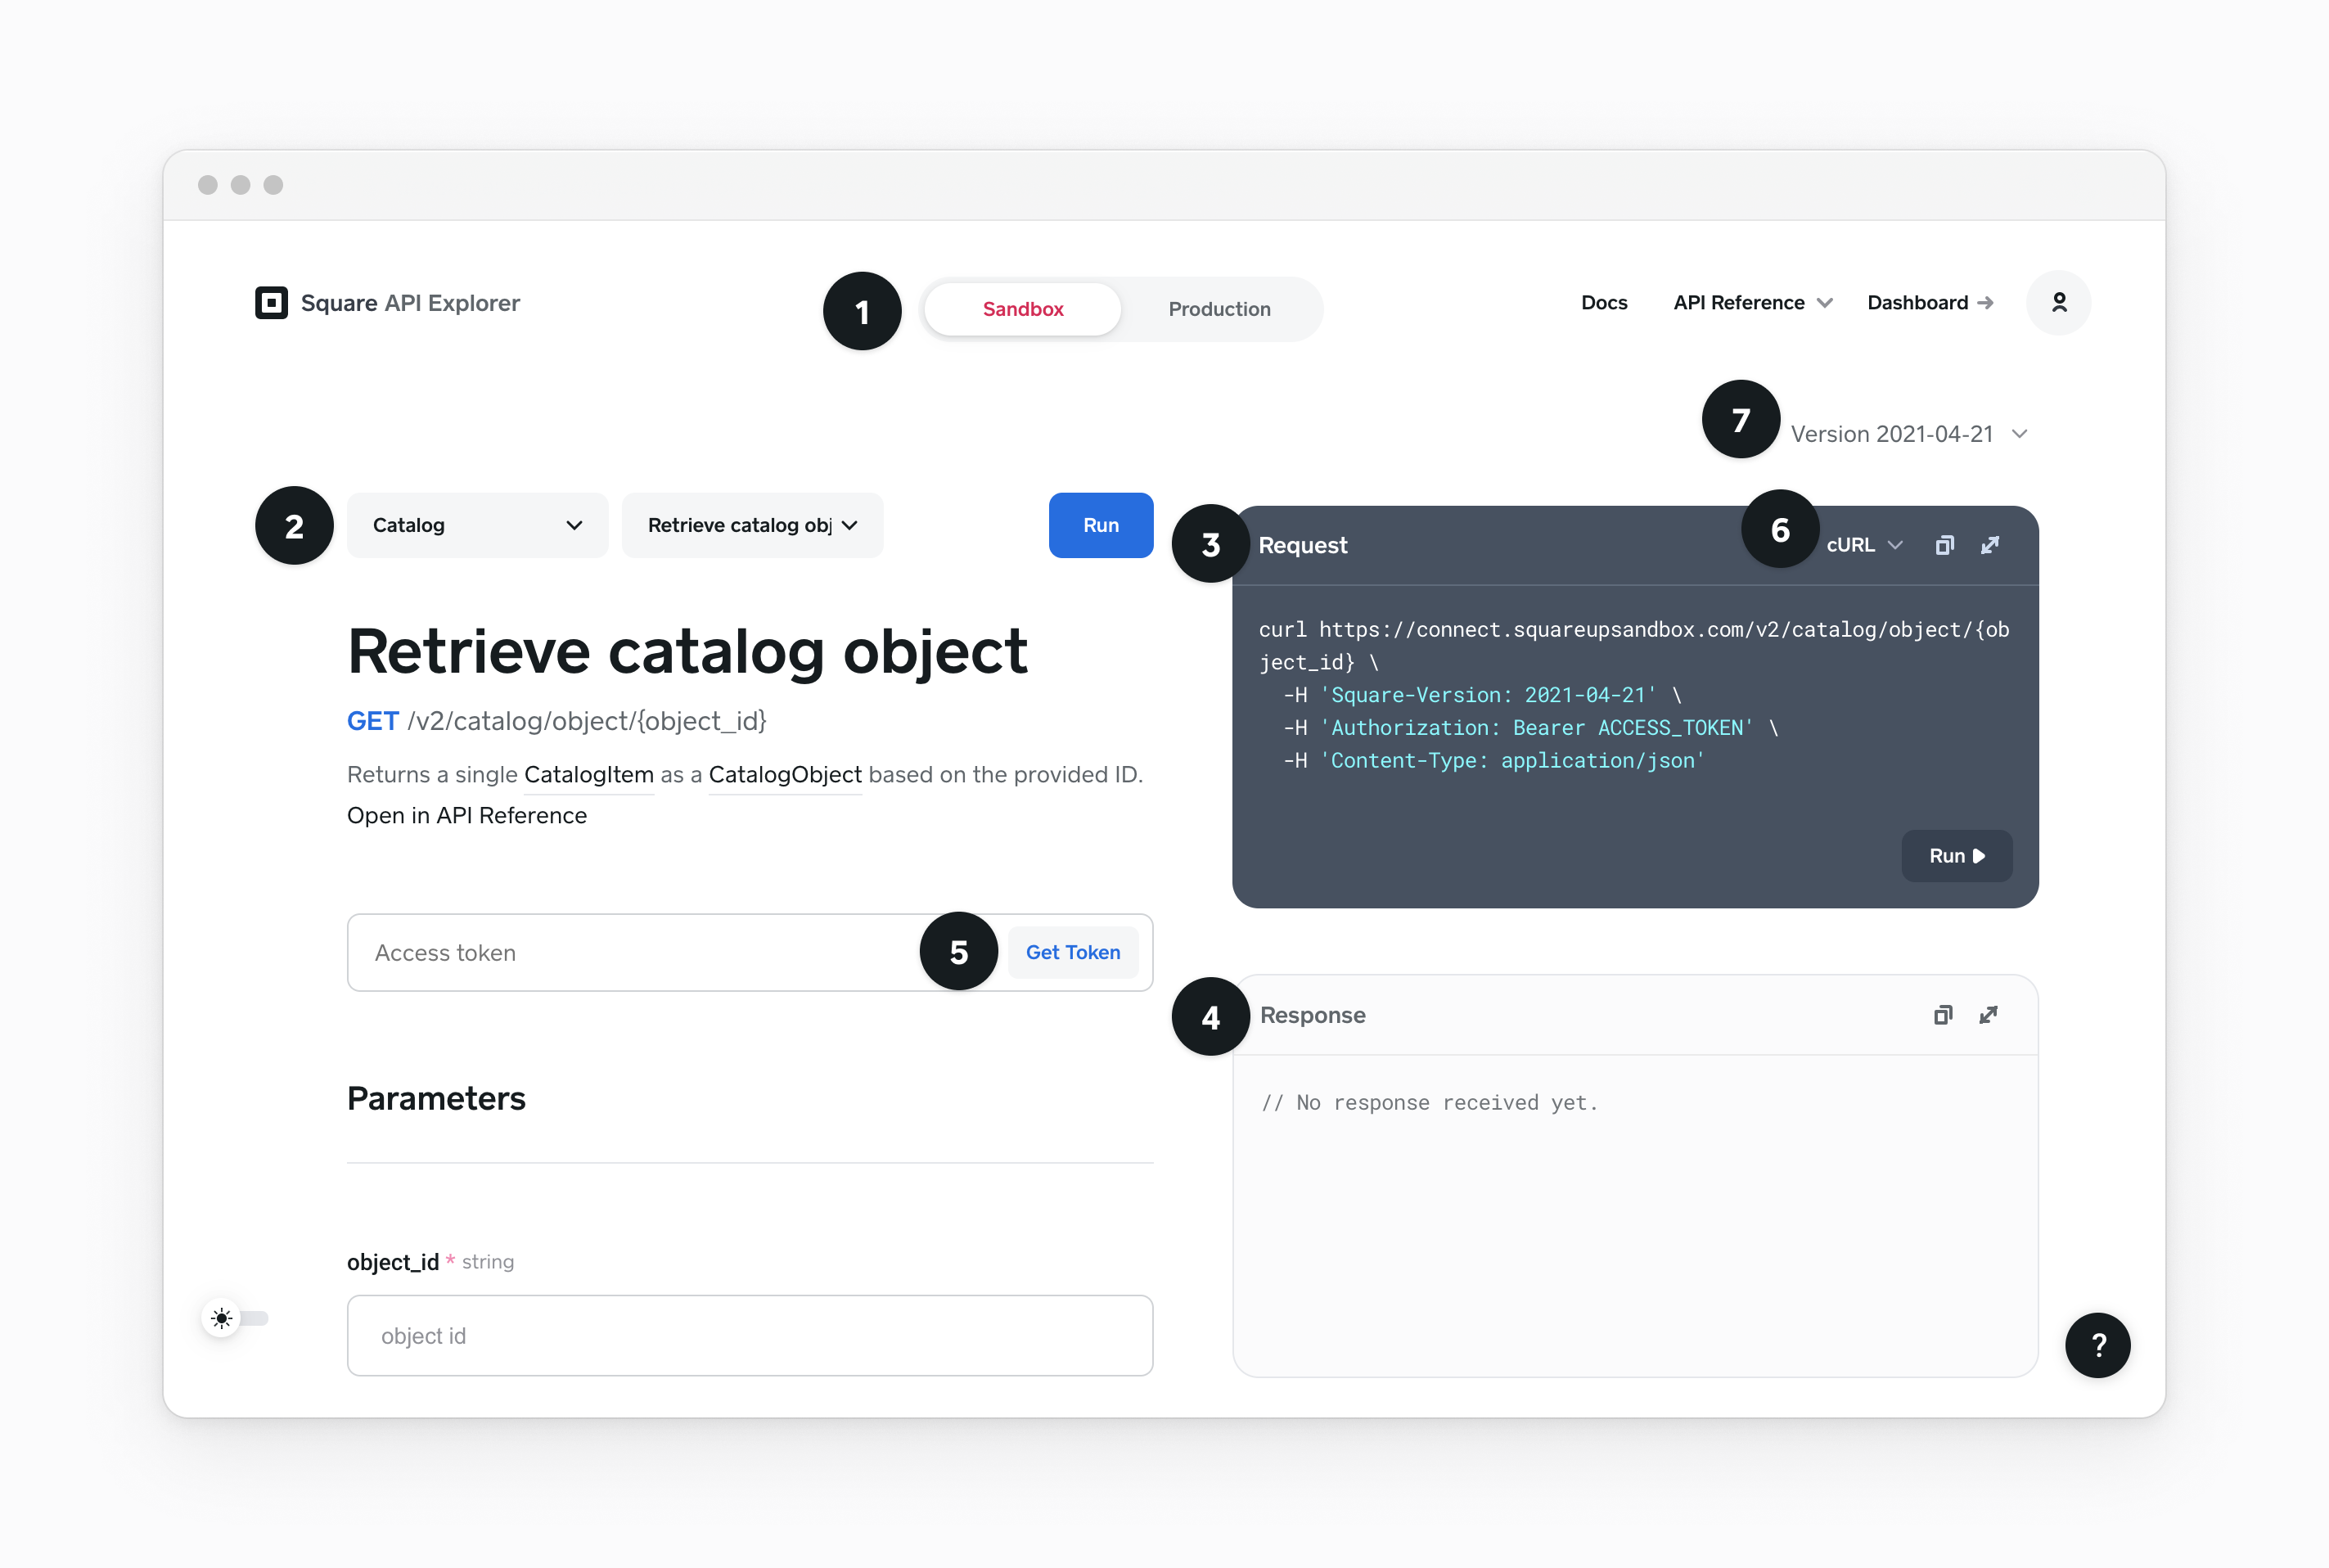 API Explorer with numbered callouts for several features